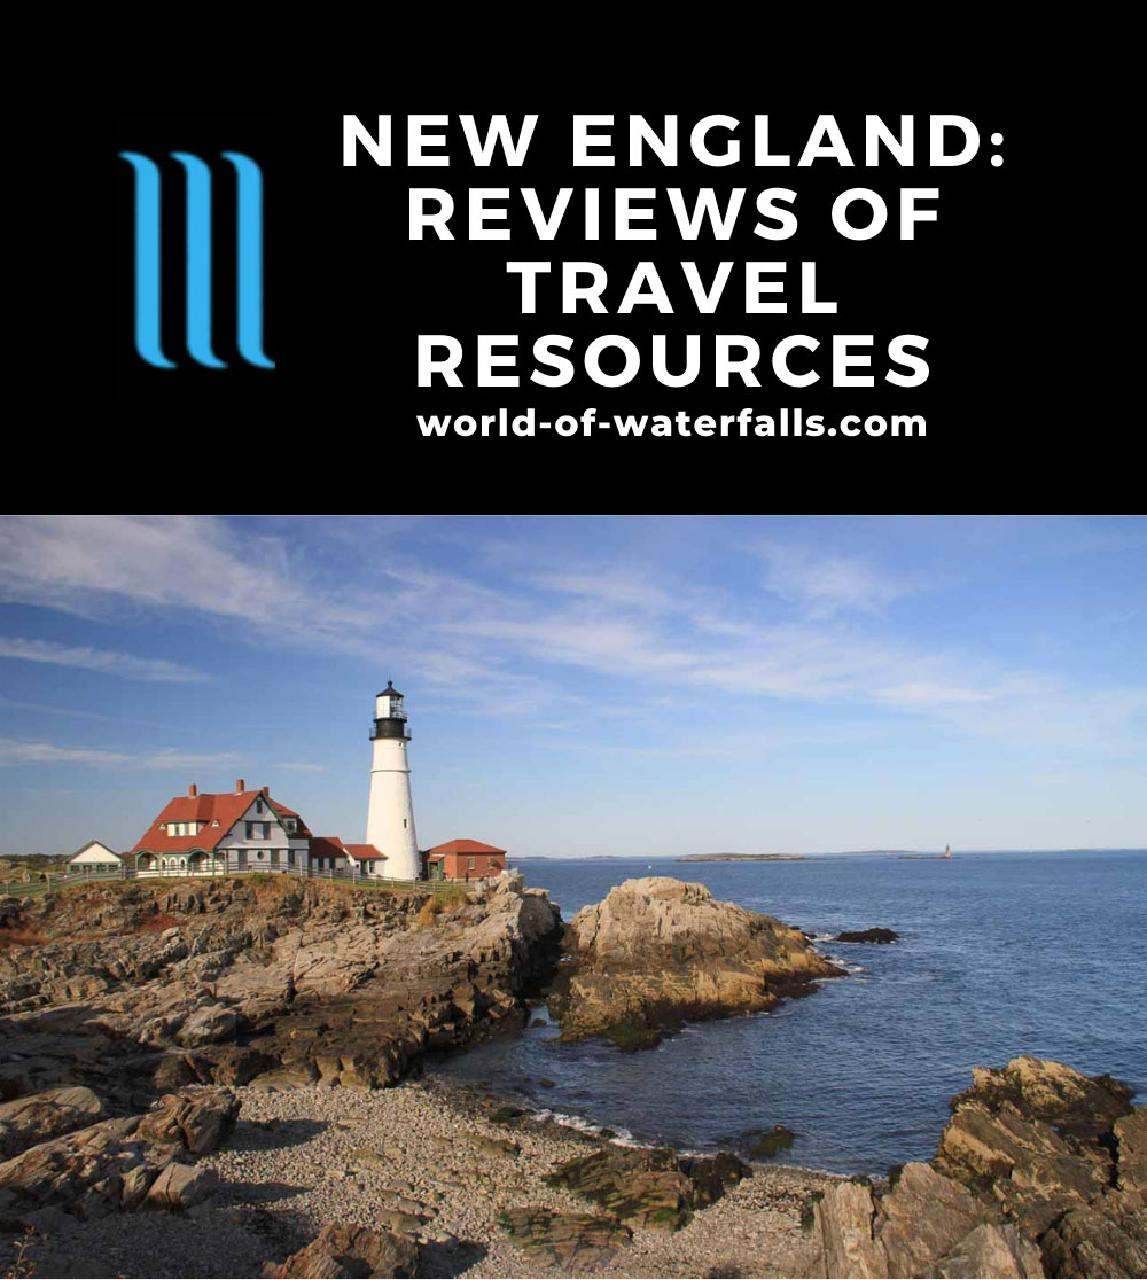 New England: Reviews of Travel Resources